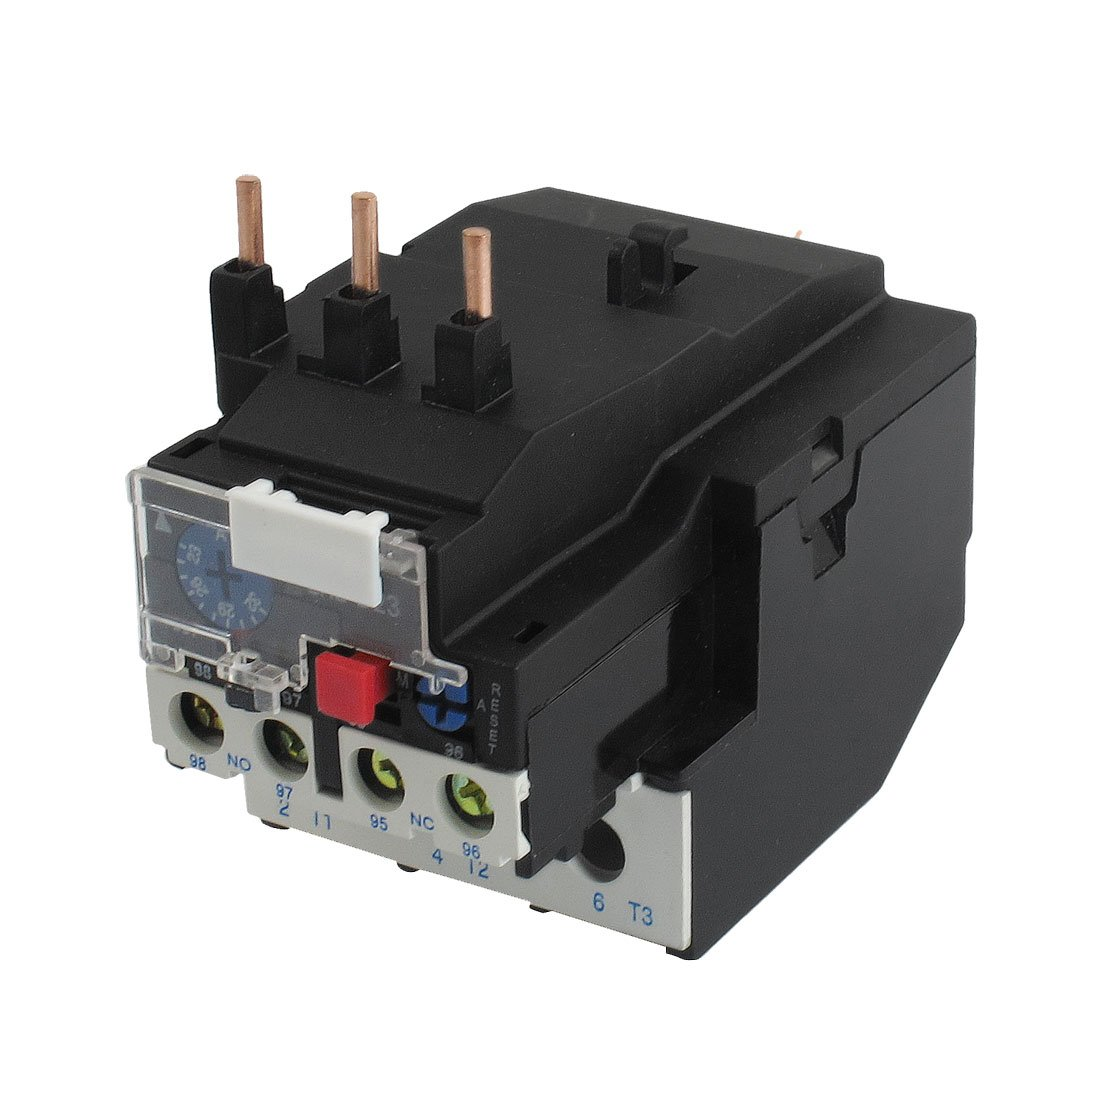 uxcell JR28-23 32A 3 Pole 23-32A Current Range 1NO 1NC Thermal Overload Relays